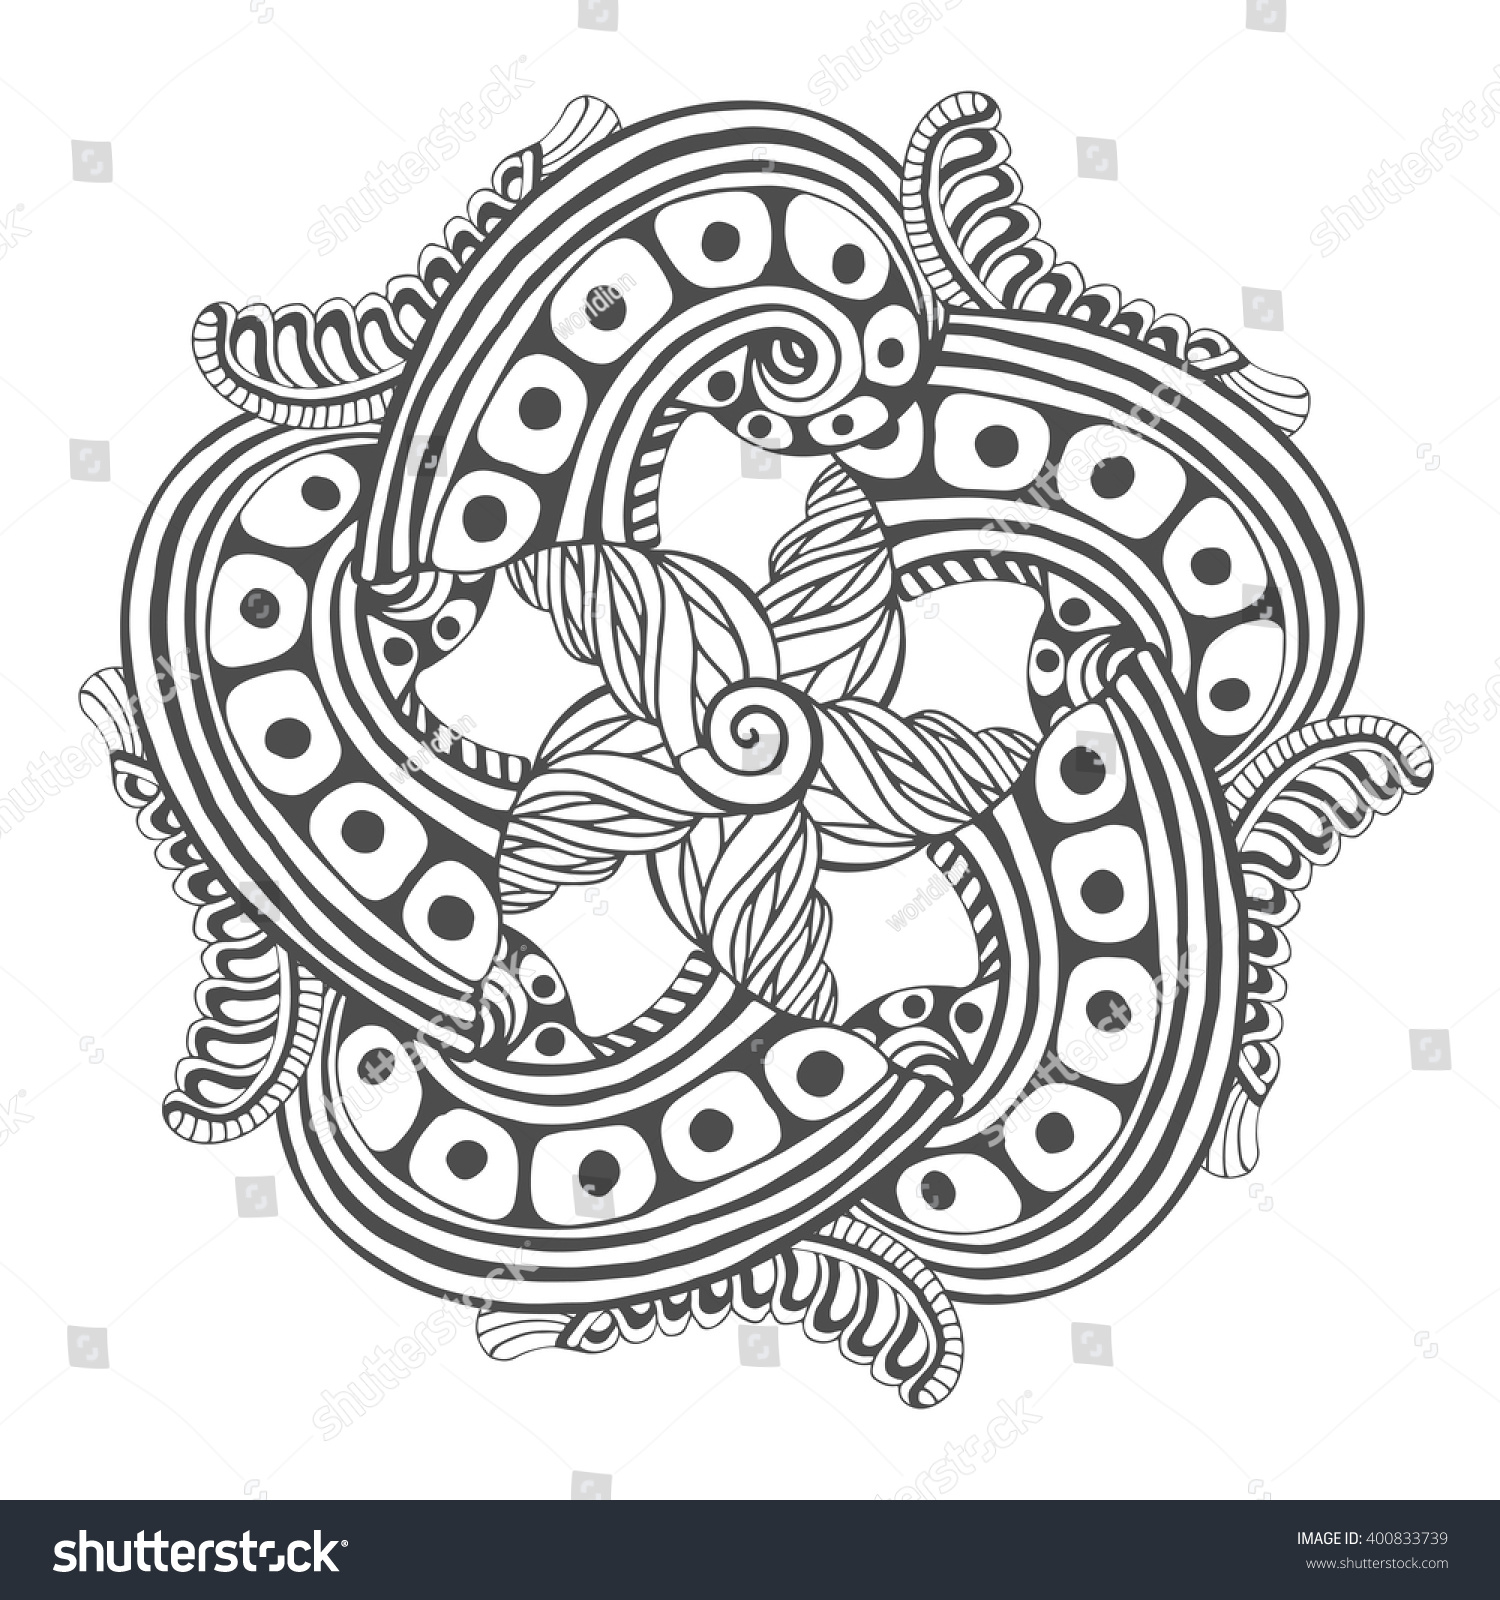 The coloring book tattoo - Mandala For Coloring Book Pages Vector Ornament Pattern For Tattoo Design